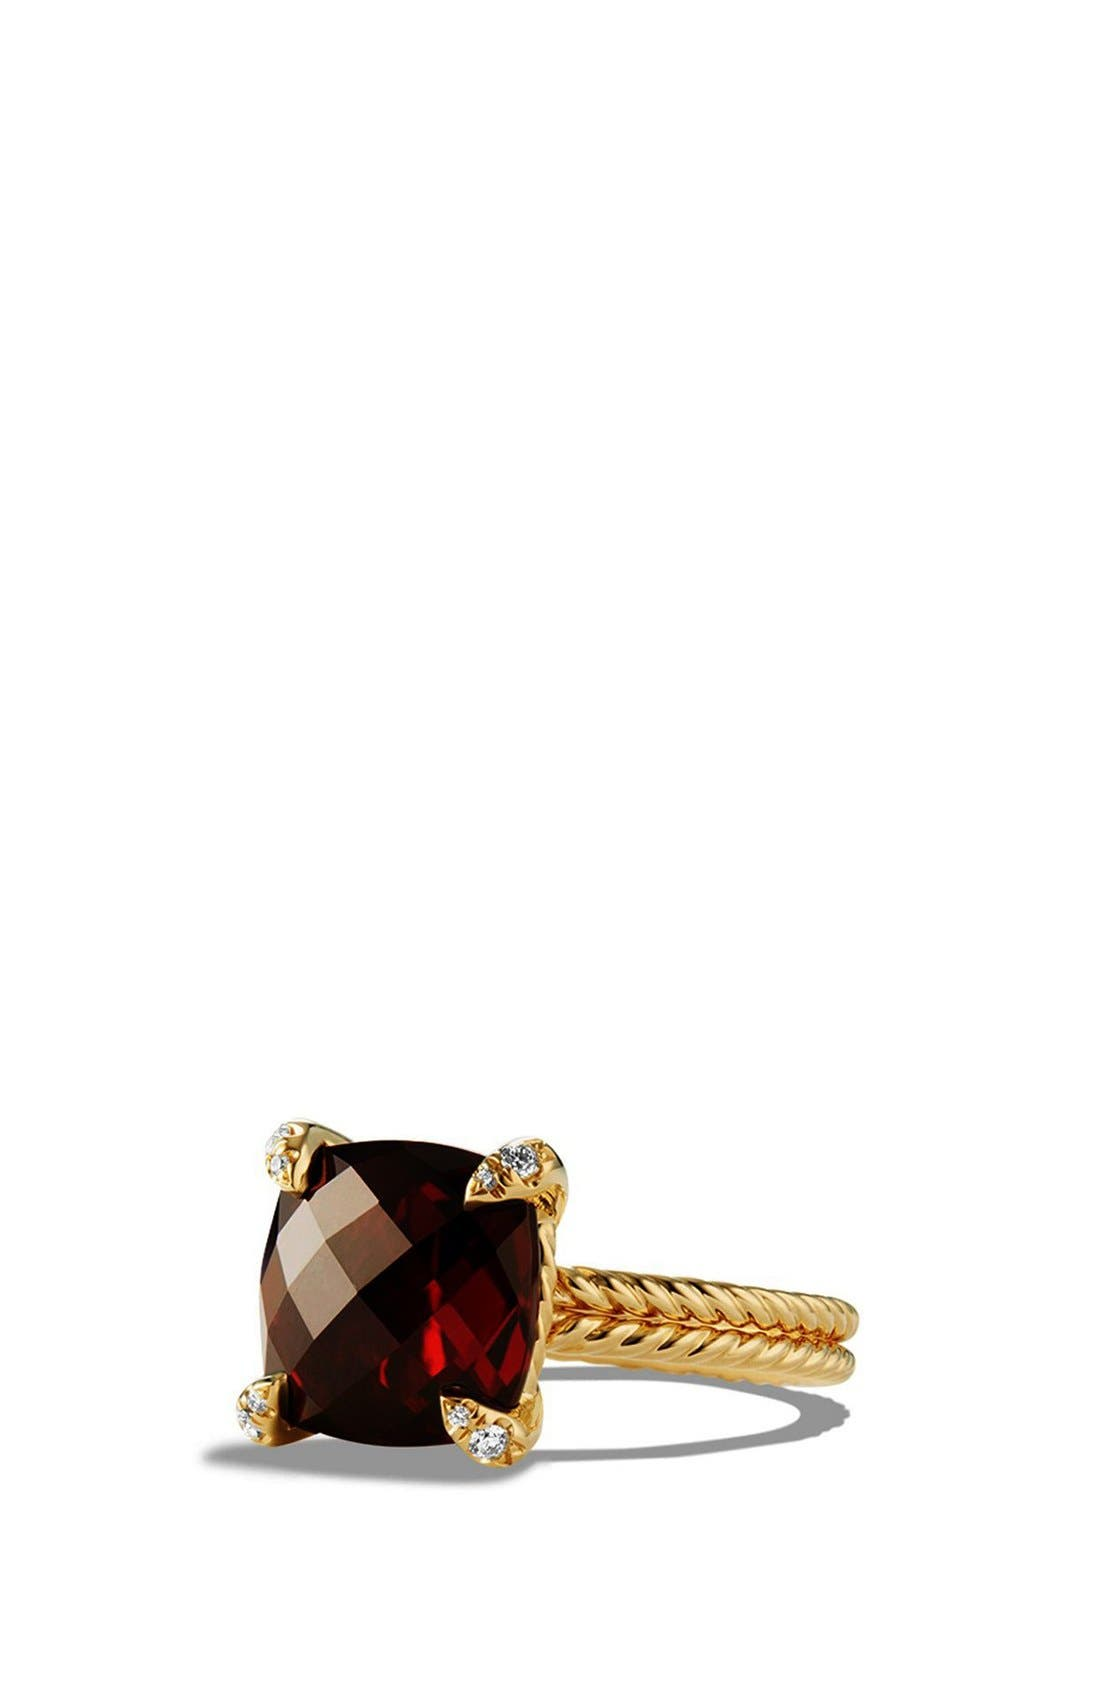 Châtelaine Ring with Hampton Blue Topaz and Diamonds in 18K Gold,                             Main thumbnail 1, color,                             GARNET